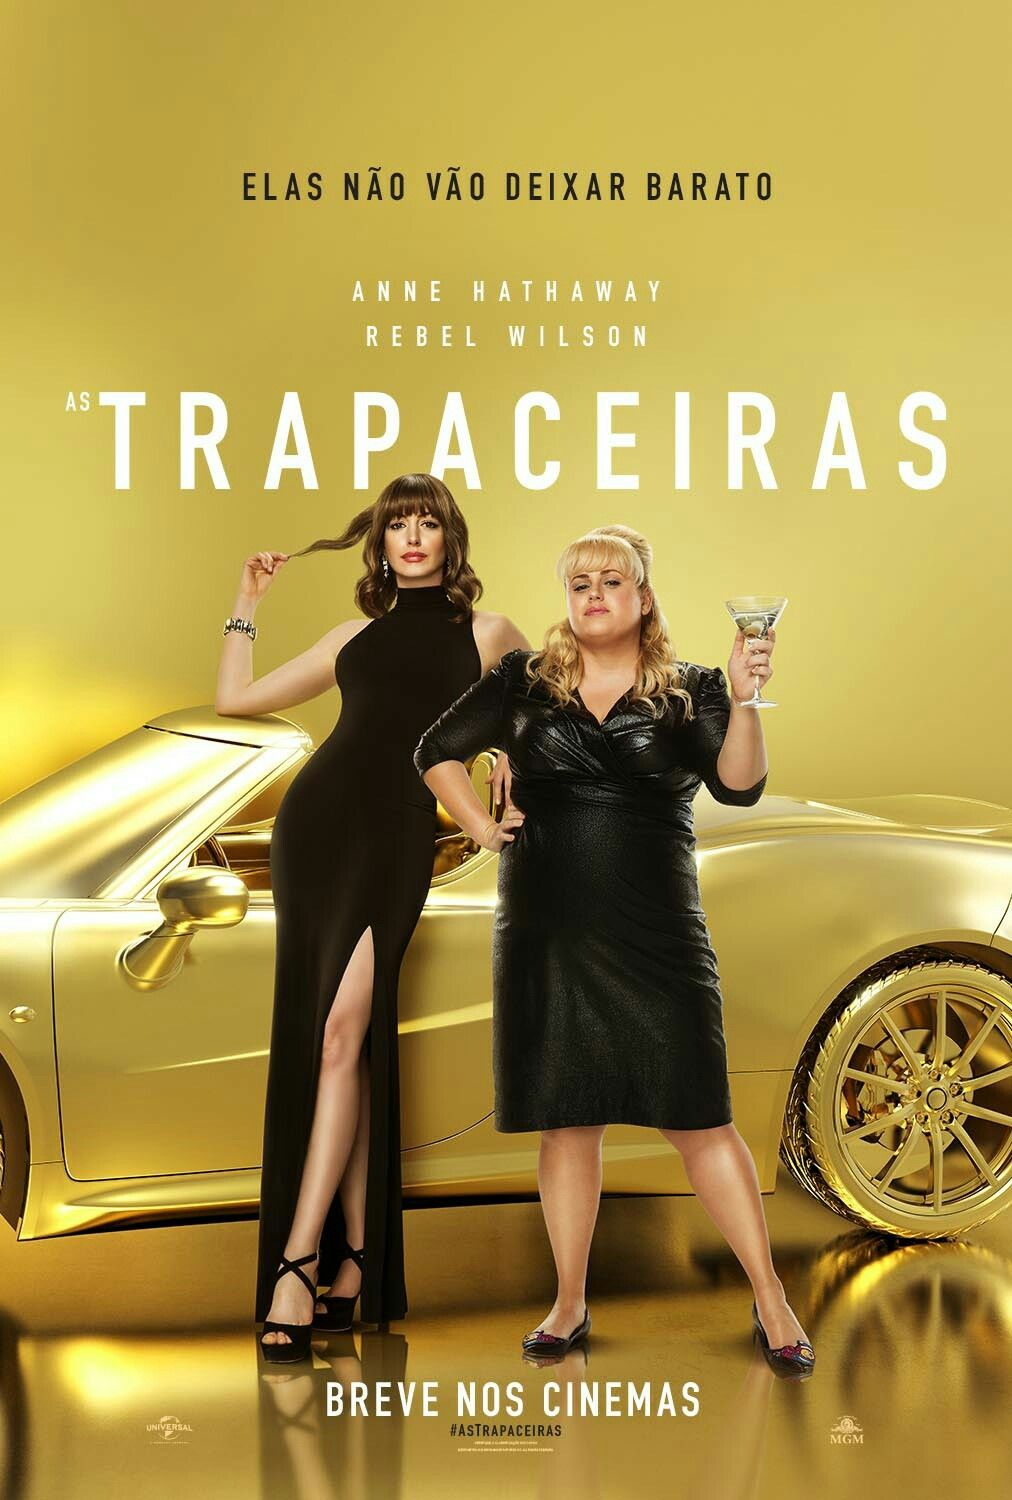 New Brazilian Poster For The Comedy The Hustle As Trapaceiras